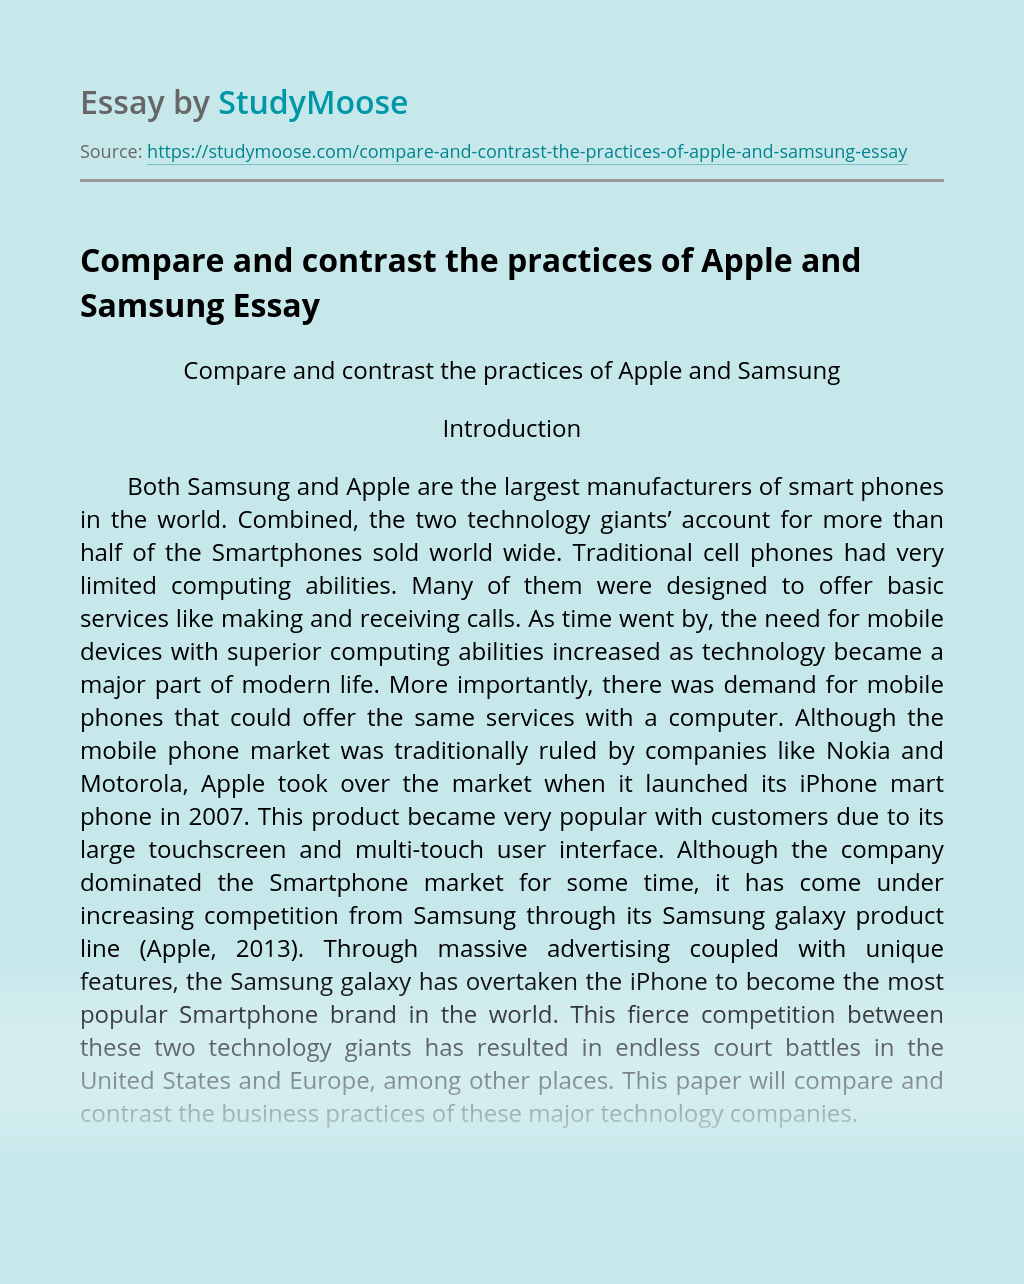 Compare and contrast the practices of Apple and Samsung